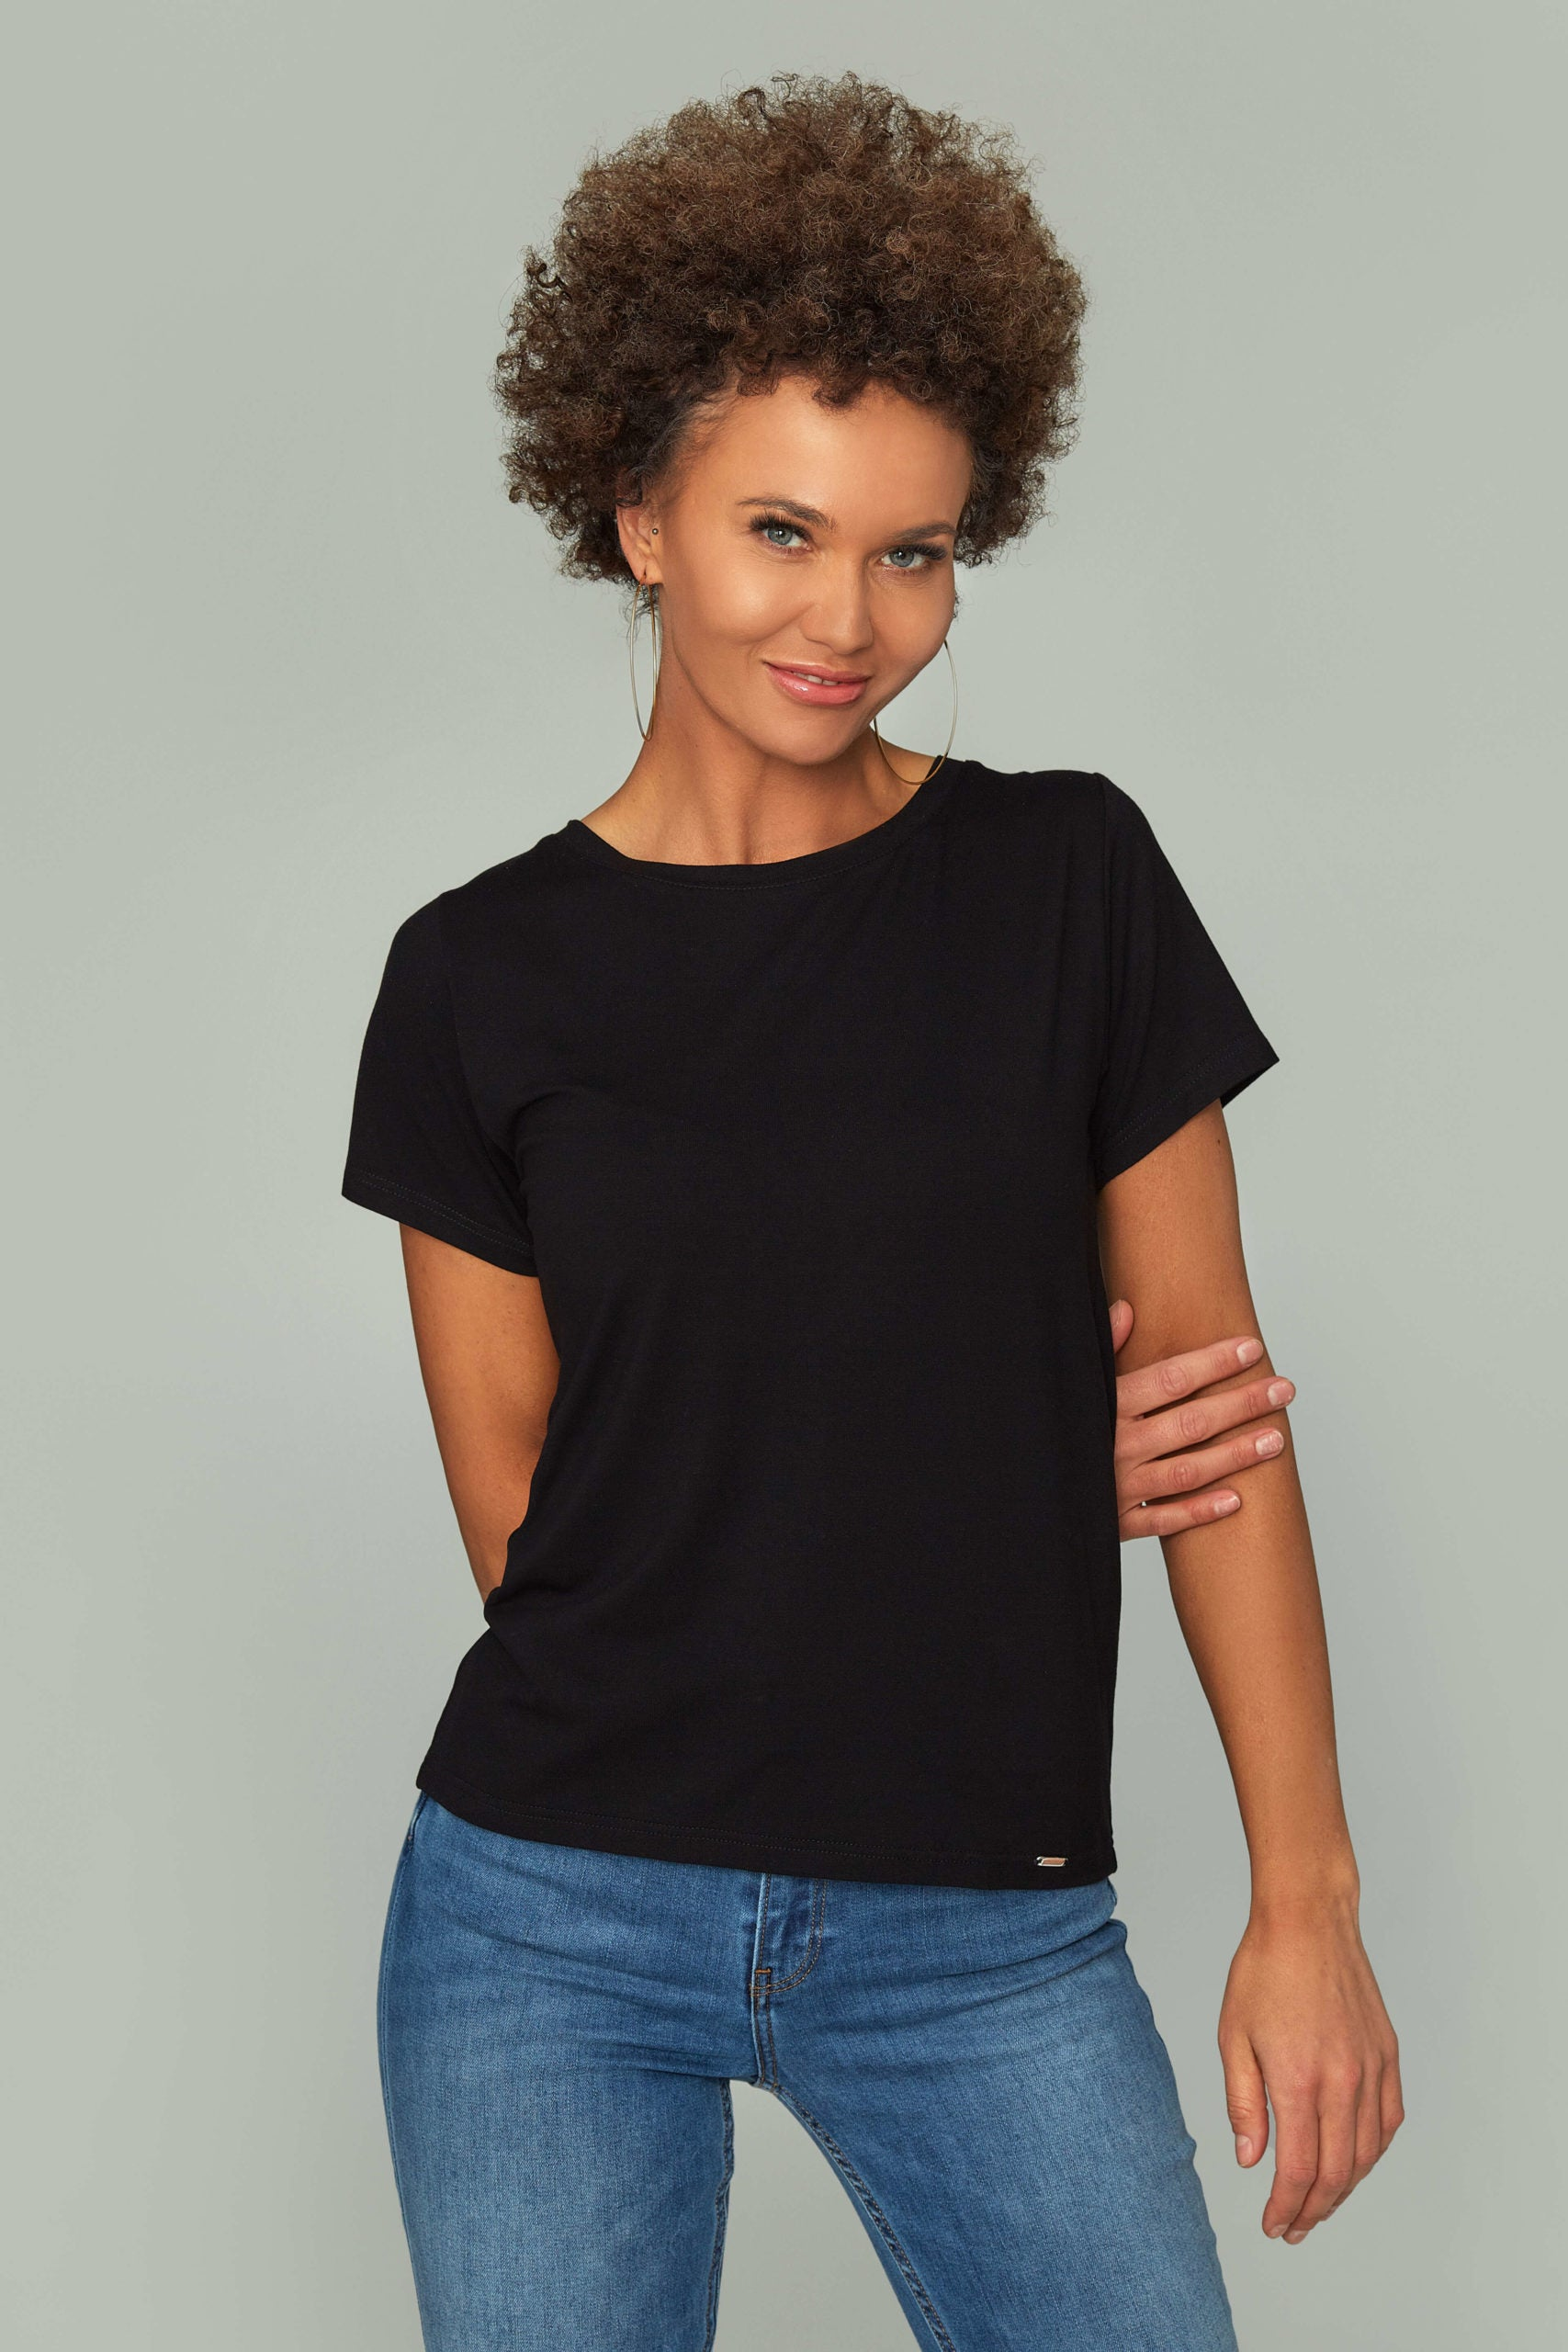 Women's Black Basic T-shirt